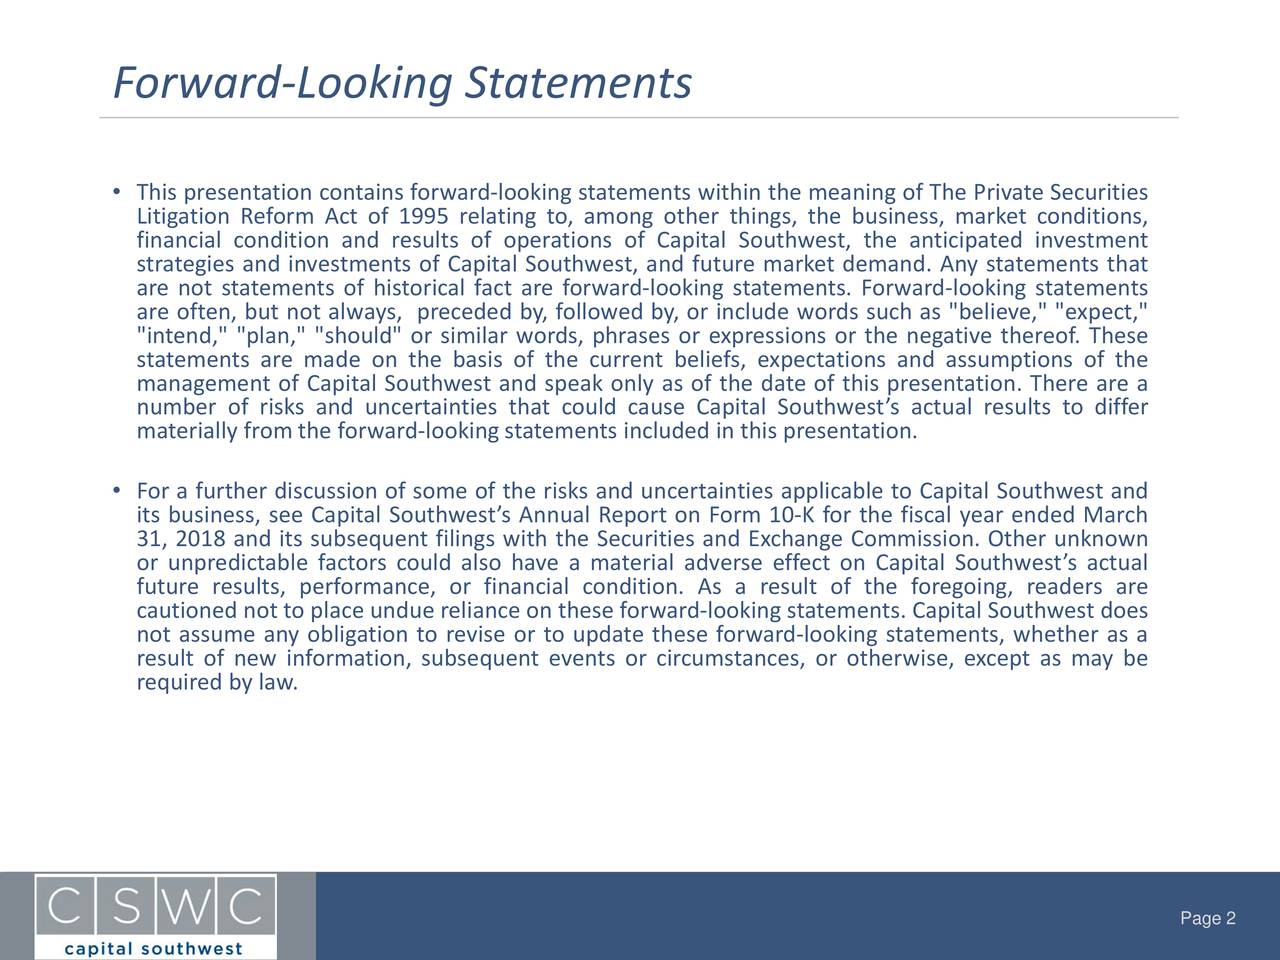 "• This presentation containsforward-looking statements within the meaning of The PrivateSecurities Litigation Reform Act of 1995 relating to, among other things, the business, market conditions, strategies and investments of Capital Southwest, and future marketdemand. Any statements thatt are not statements of historical fact are forward-looking statements. Forward-looking statements are often, but not always, preceded by,followed by,or include words such as ""believe,"" ""expect,"" ""intend,"" ""plan,"" ""should"" or similar words, phrases or expressions or the negative thereof. These statements are made on the basis of the current beliefs, expectations and assumptions of the management of Capital Southwest and speak only as of the date of this presentation. There are a number of risks and uncertainties that could cause Capital Southwest's actual results to differ materially from the forward-looking statements included in this presentation. • For a further discussion of some of the risks and uncertainties applicable to Capital Southwest and its business, see Capital Southwest's Annual Report on Form 10-K for the fiscal year ended March 31, 2018 and its subsequent filings with the Securities and Exchange Commission. Other unknown or unpredictable factors could also have a material adverse effect on Capital Southwest'sactual future results, performance, or financial condition. As a result of the foregoing, readers are cautioned not to place undue relianceon these forward-looking statements. Capital Southwest does not assume any obligation to revise or to update these forward-looking statements, whether as a result of new information, subsequent events or circumstances, or otherwise, except as may be requiredby law. Page 2"